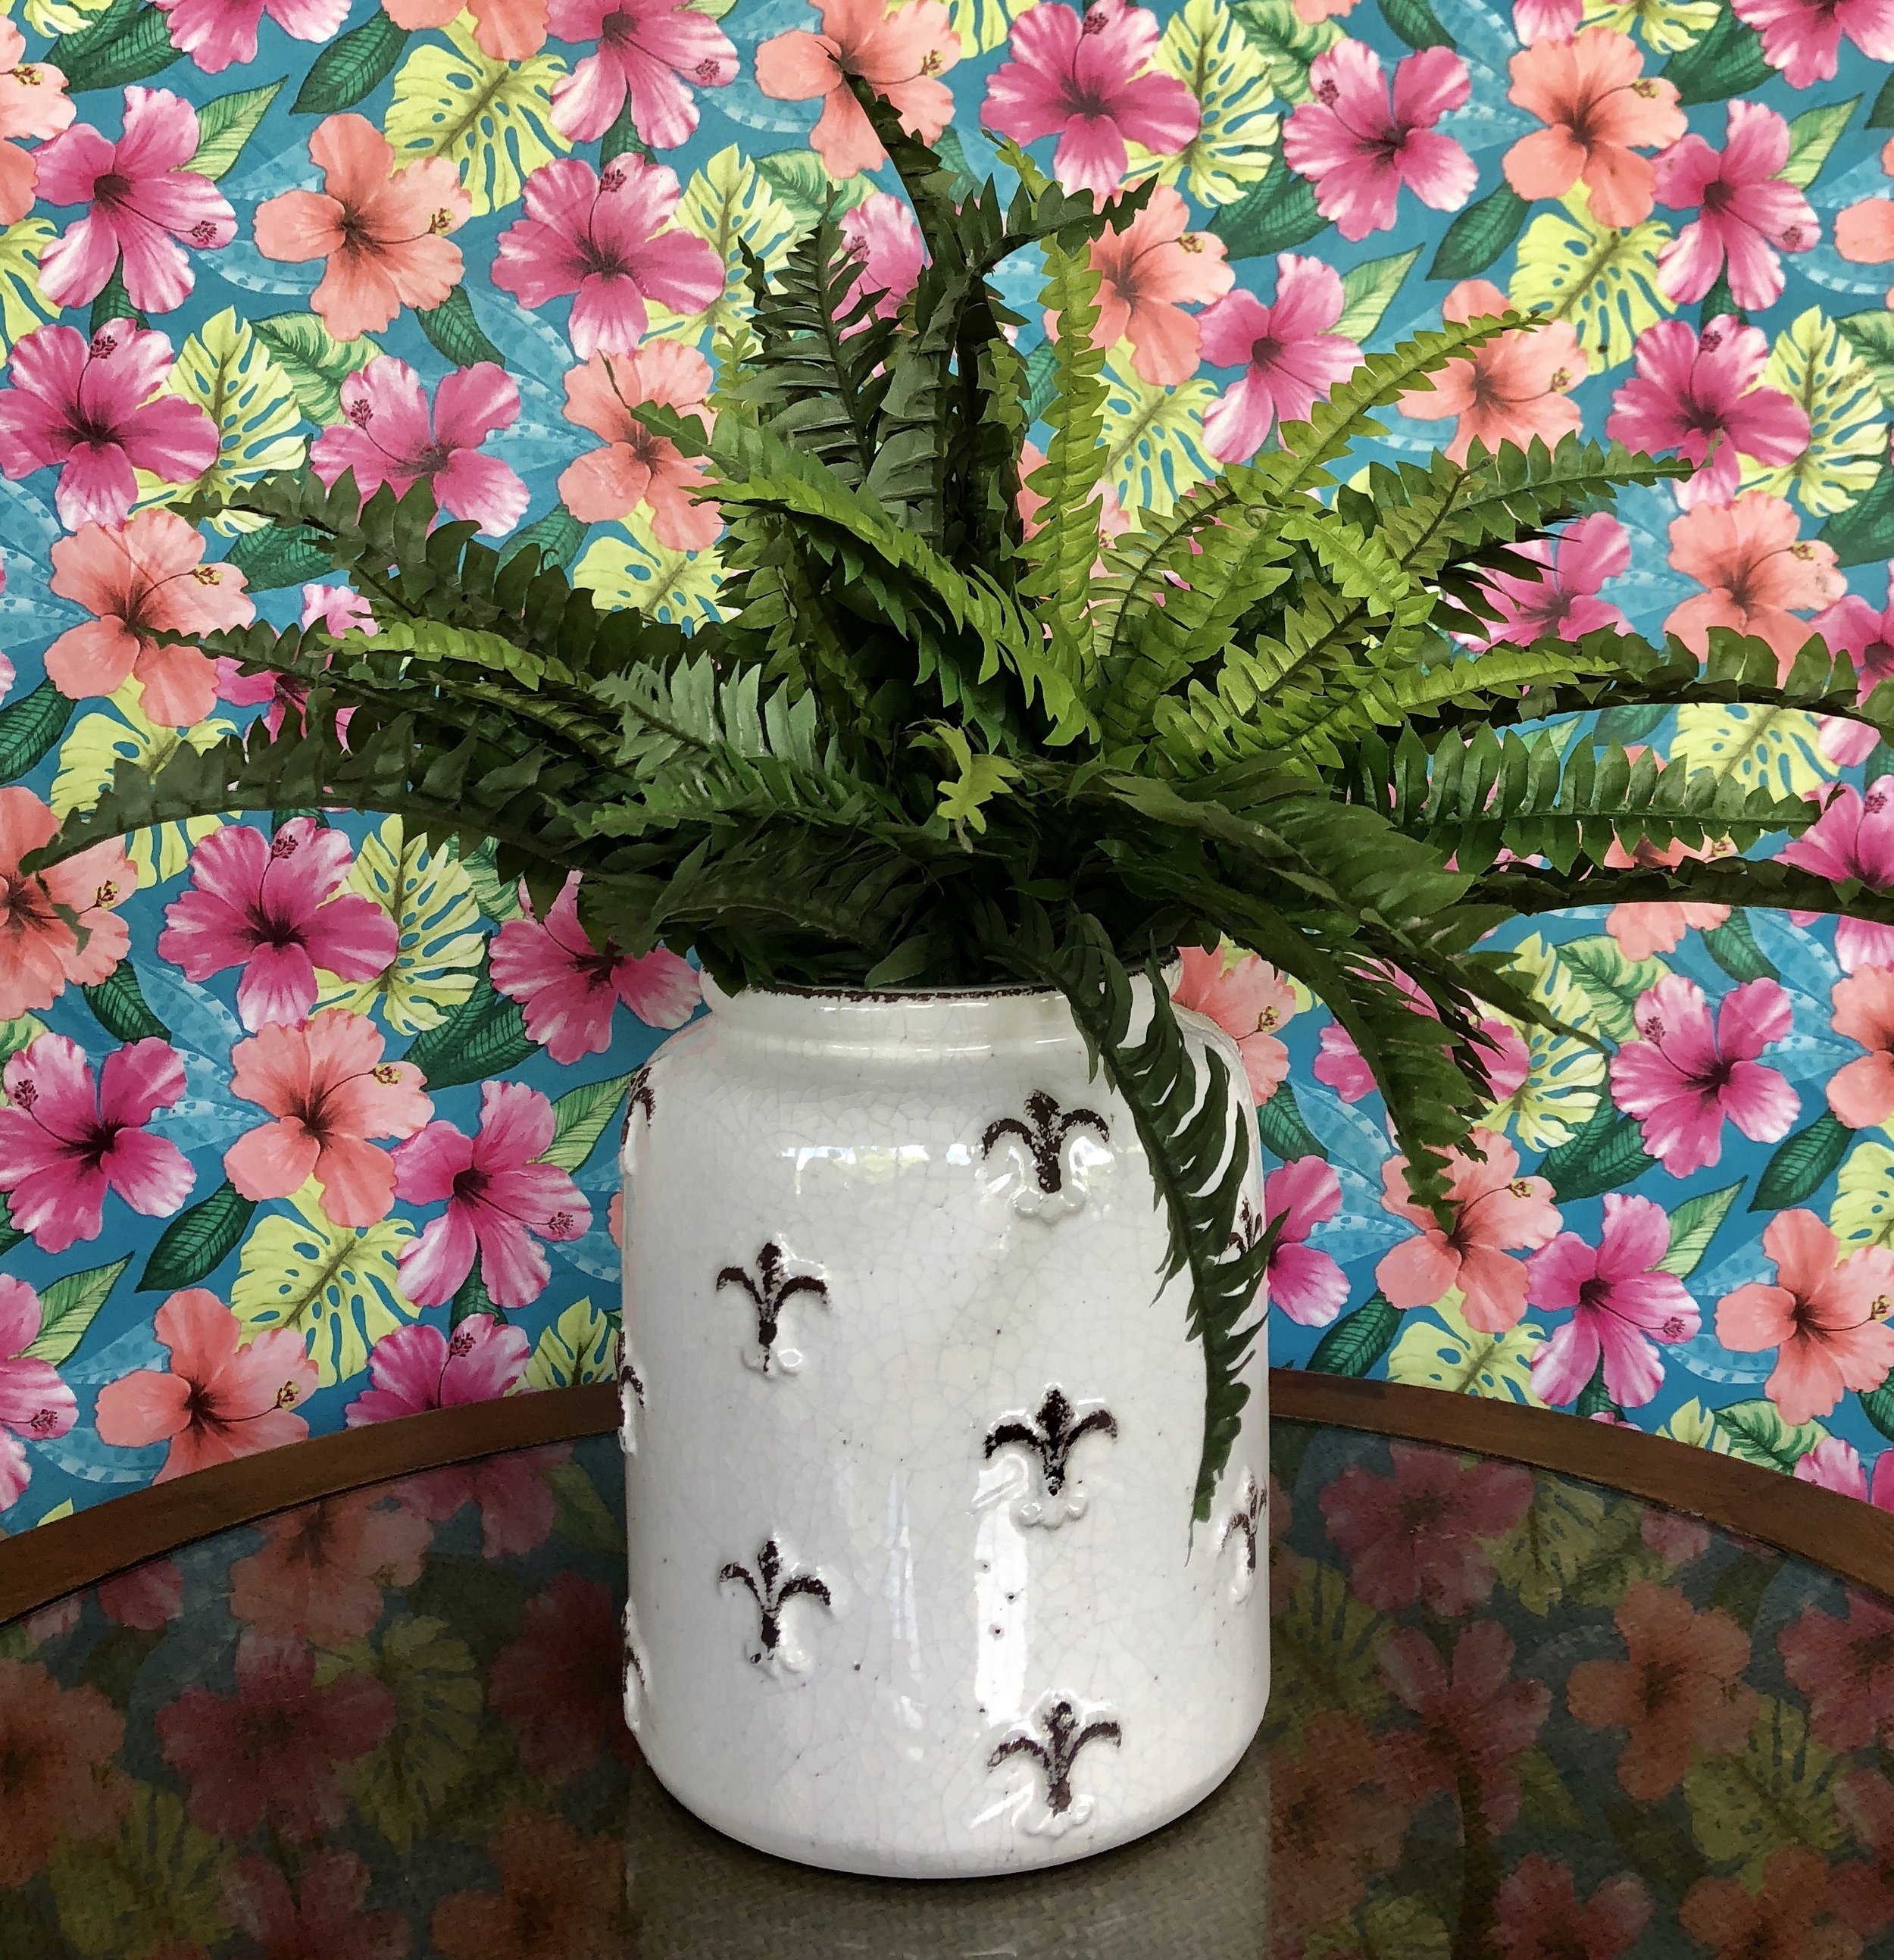 Faux ferns from Three French Hens $20.99